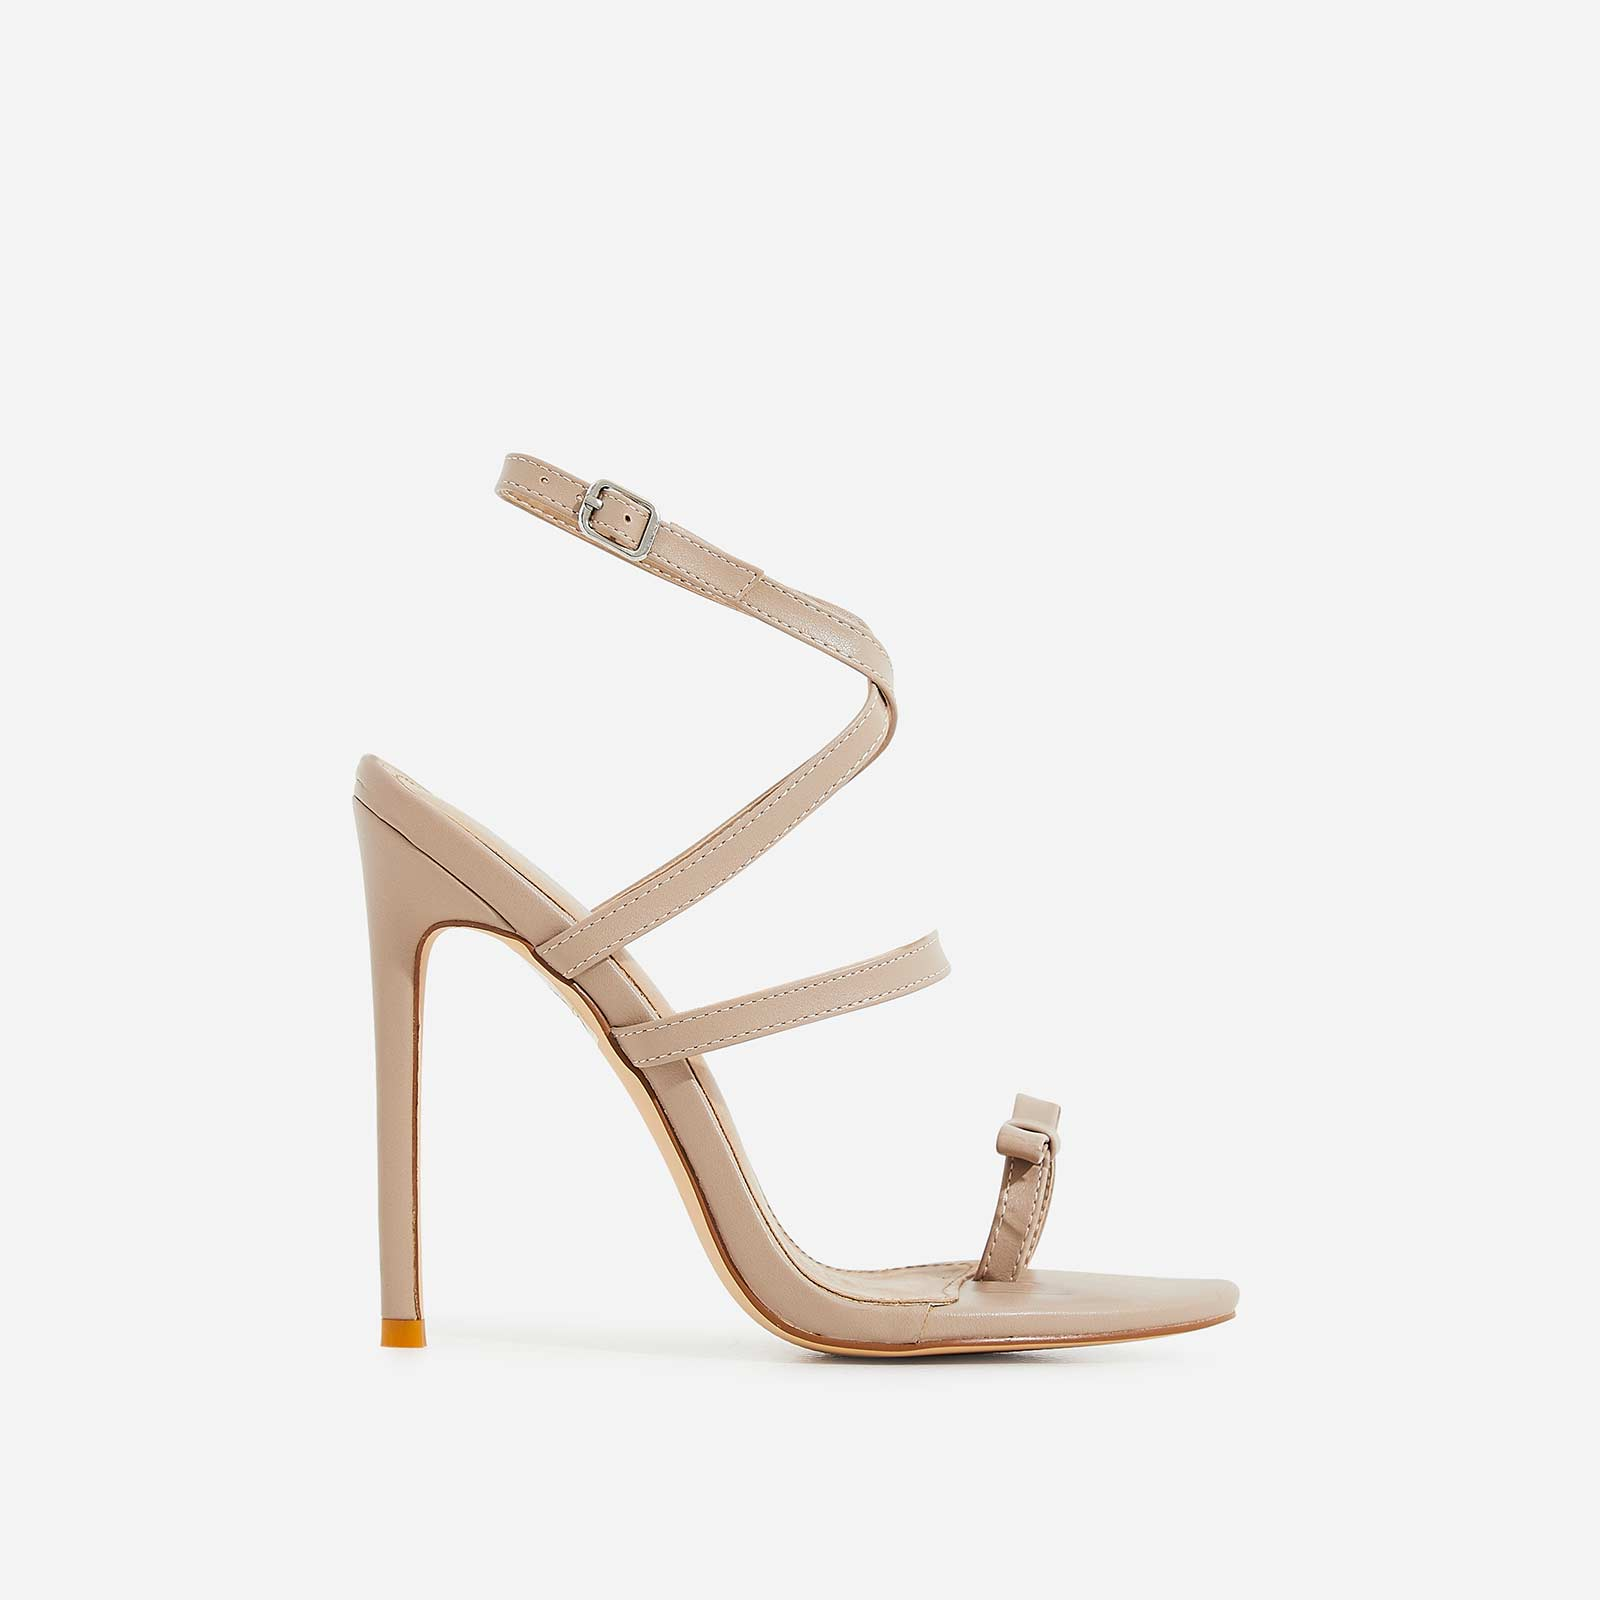 Samira Bow Detail Barely There Heel In Nude Faux Leather